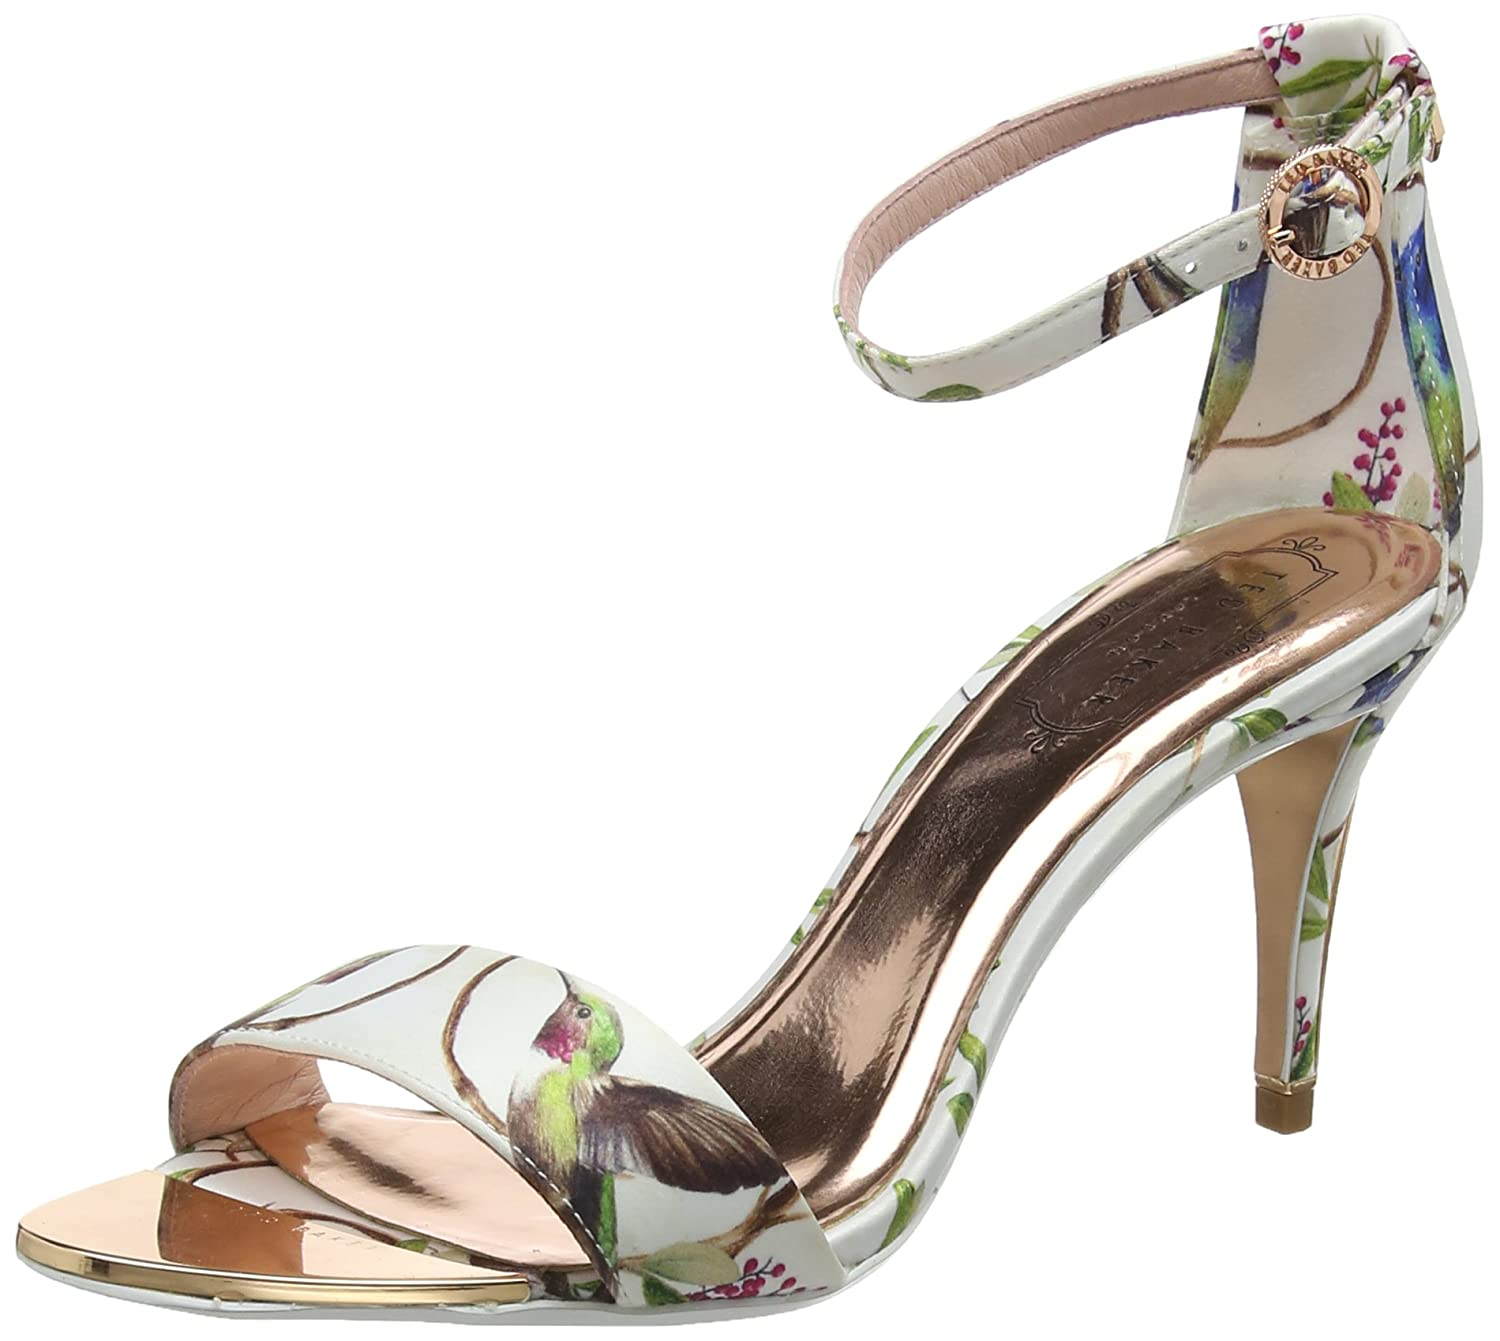 a93f8b37ae6cbc Ted Baker Women s Mavbe Ankle Strap Sandals  Amazon.co.uk  Shoes   Bags